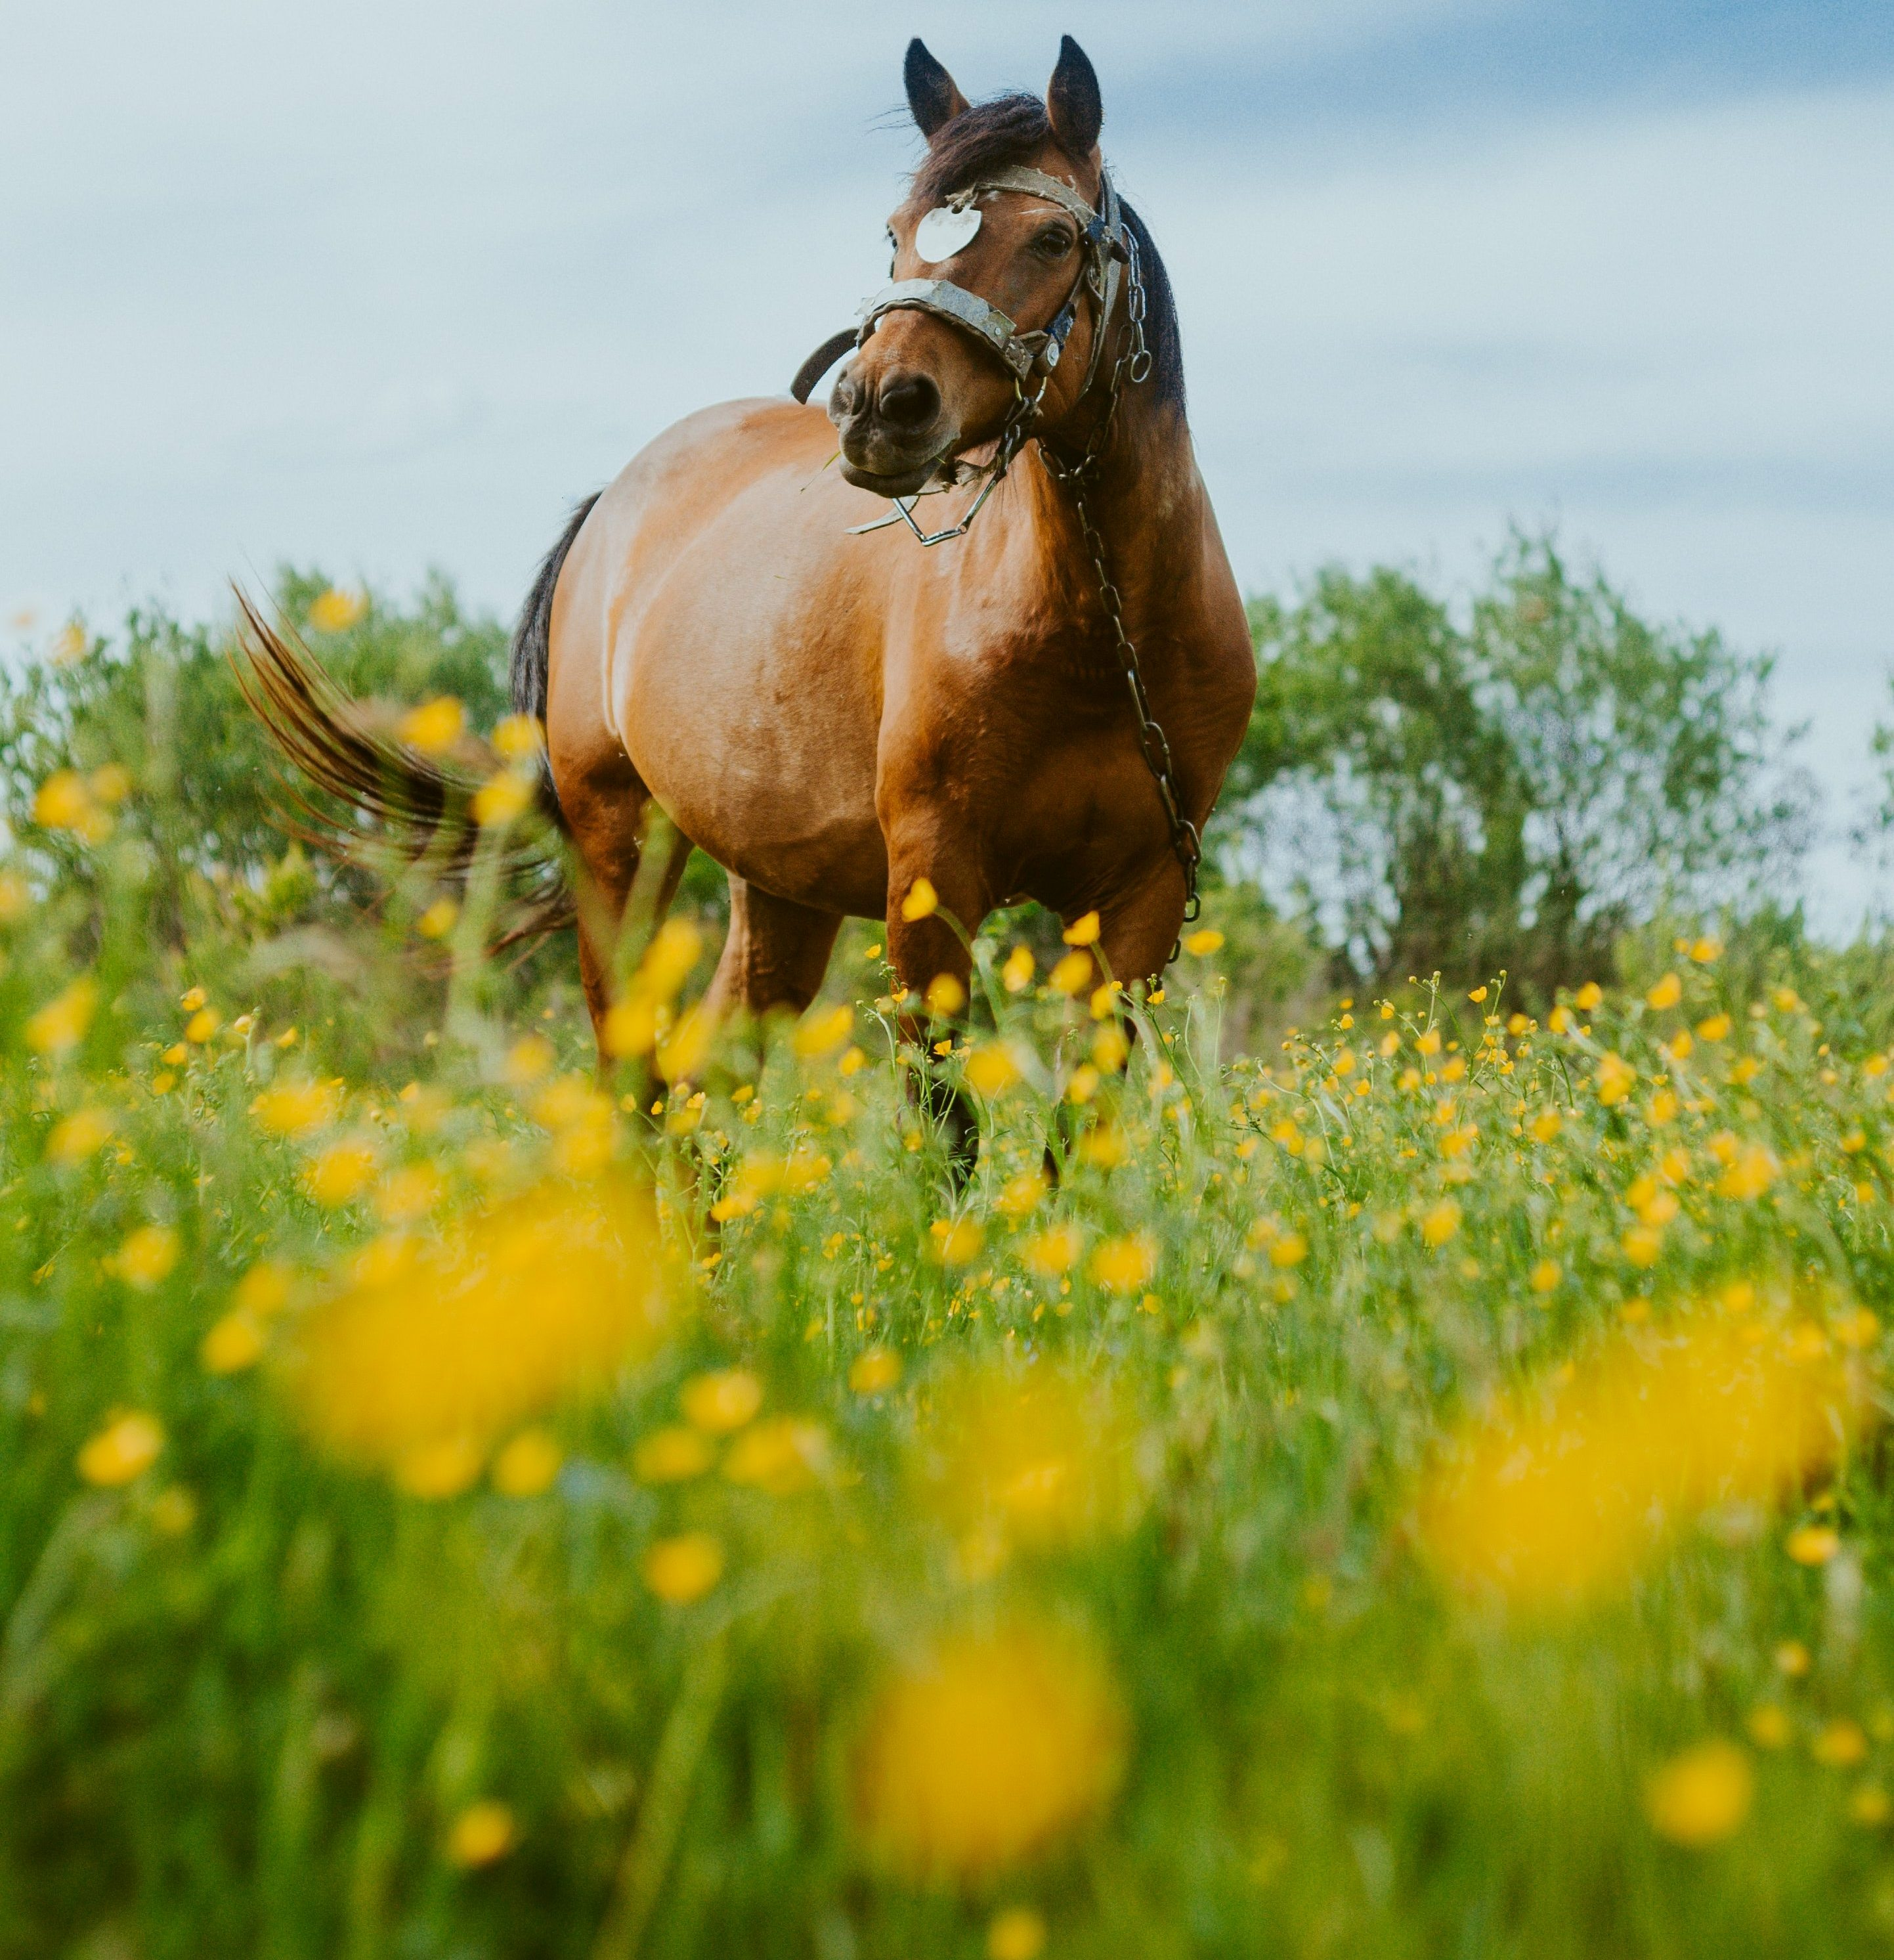 A Personal Story About My Older Horse Dribbling Urine